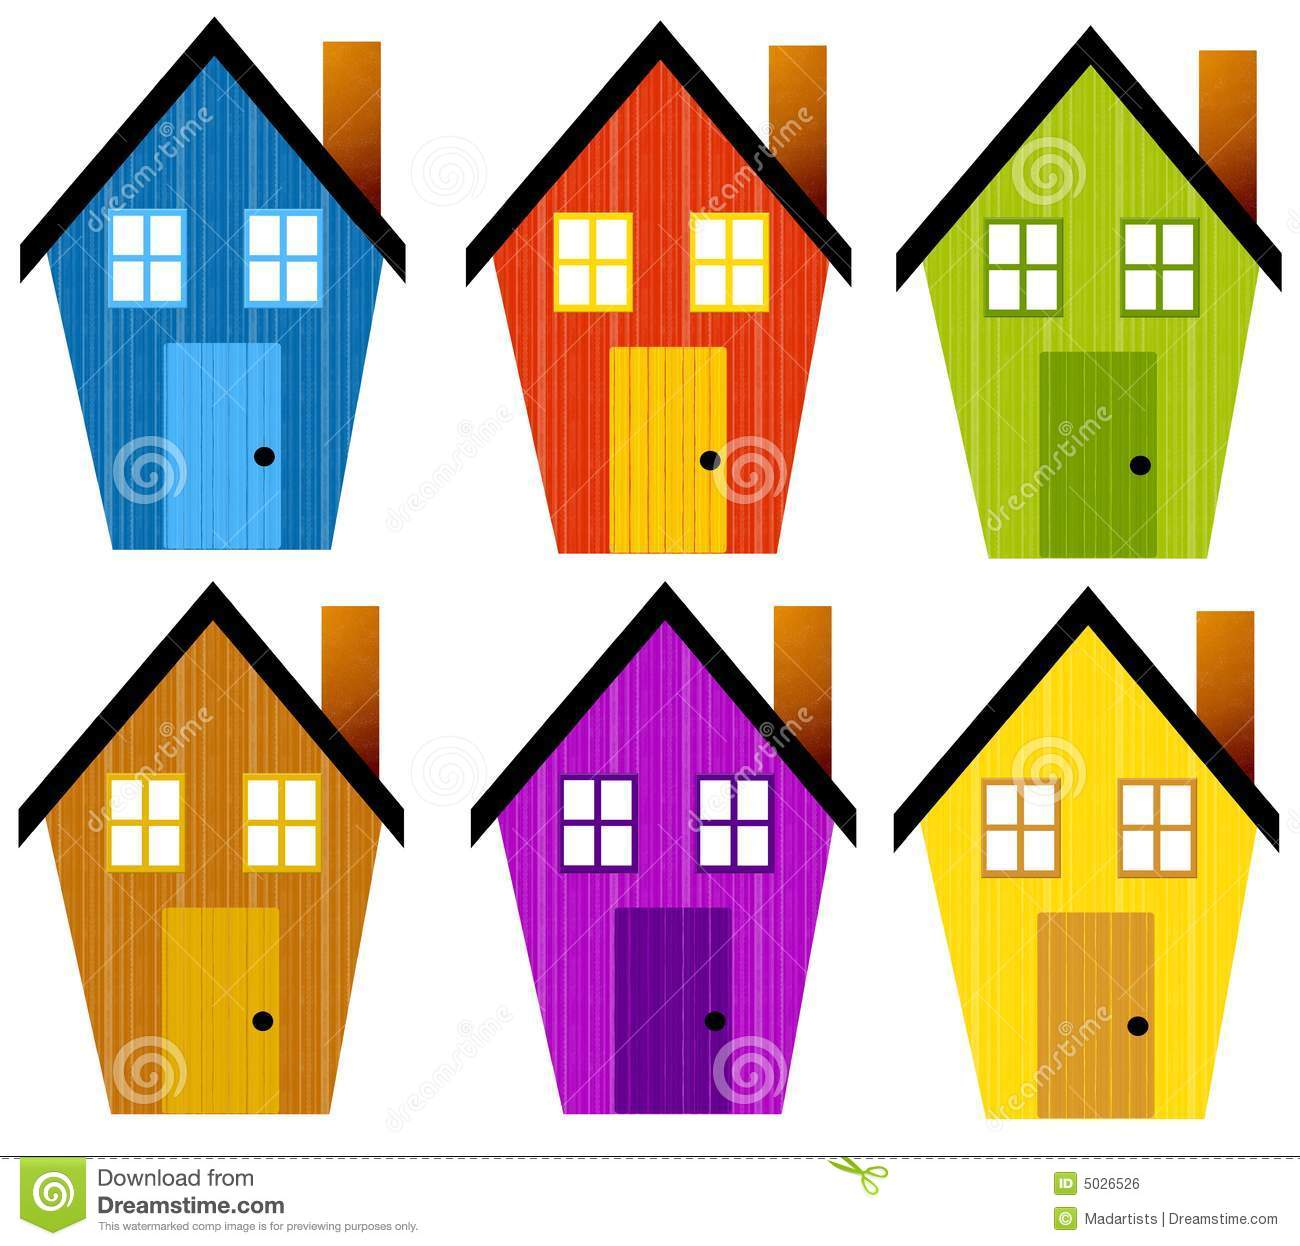 Artsy Rustic Clip Art Houses Royalty Free Stock Image   Image  5026526